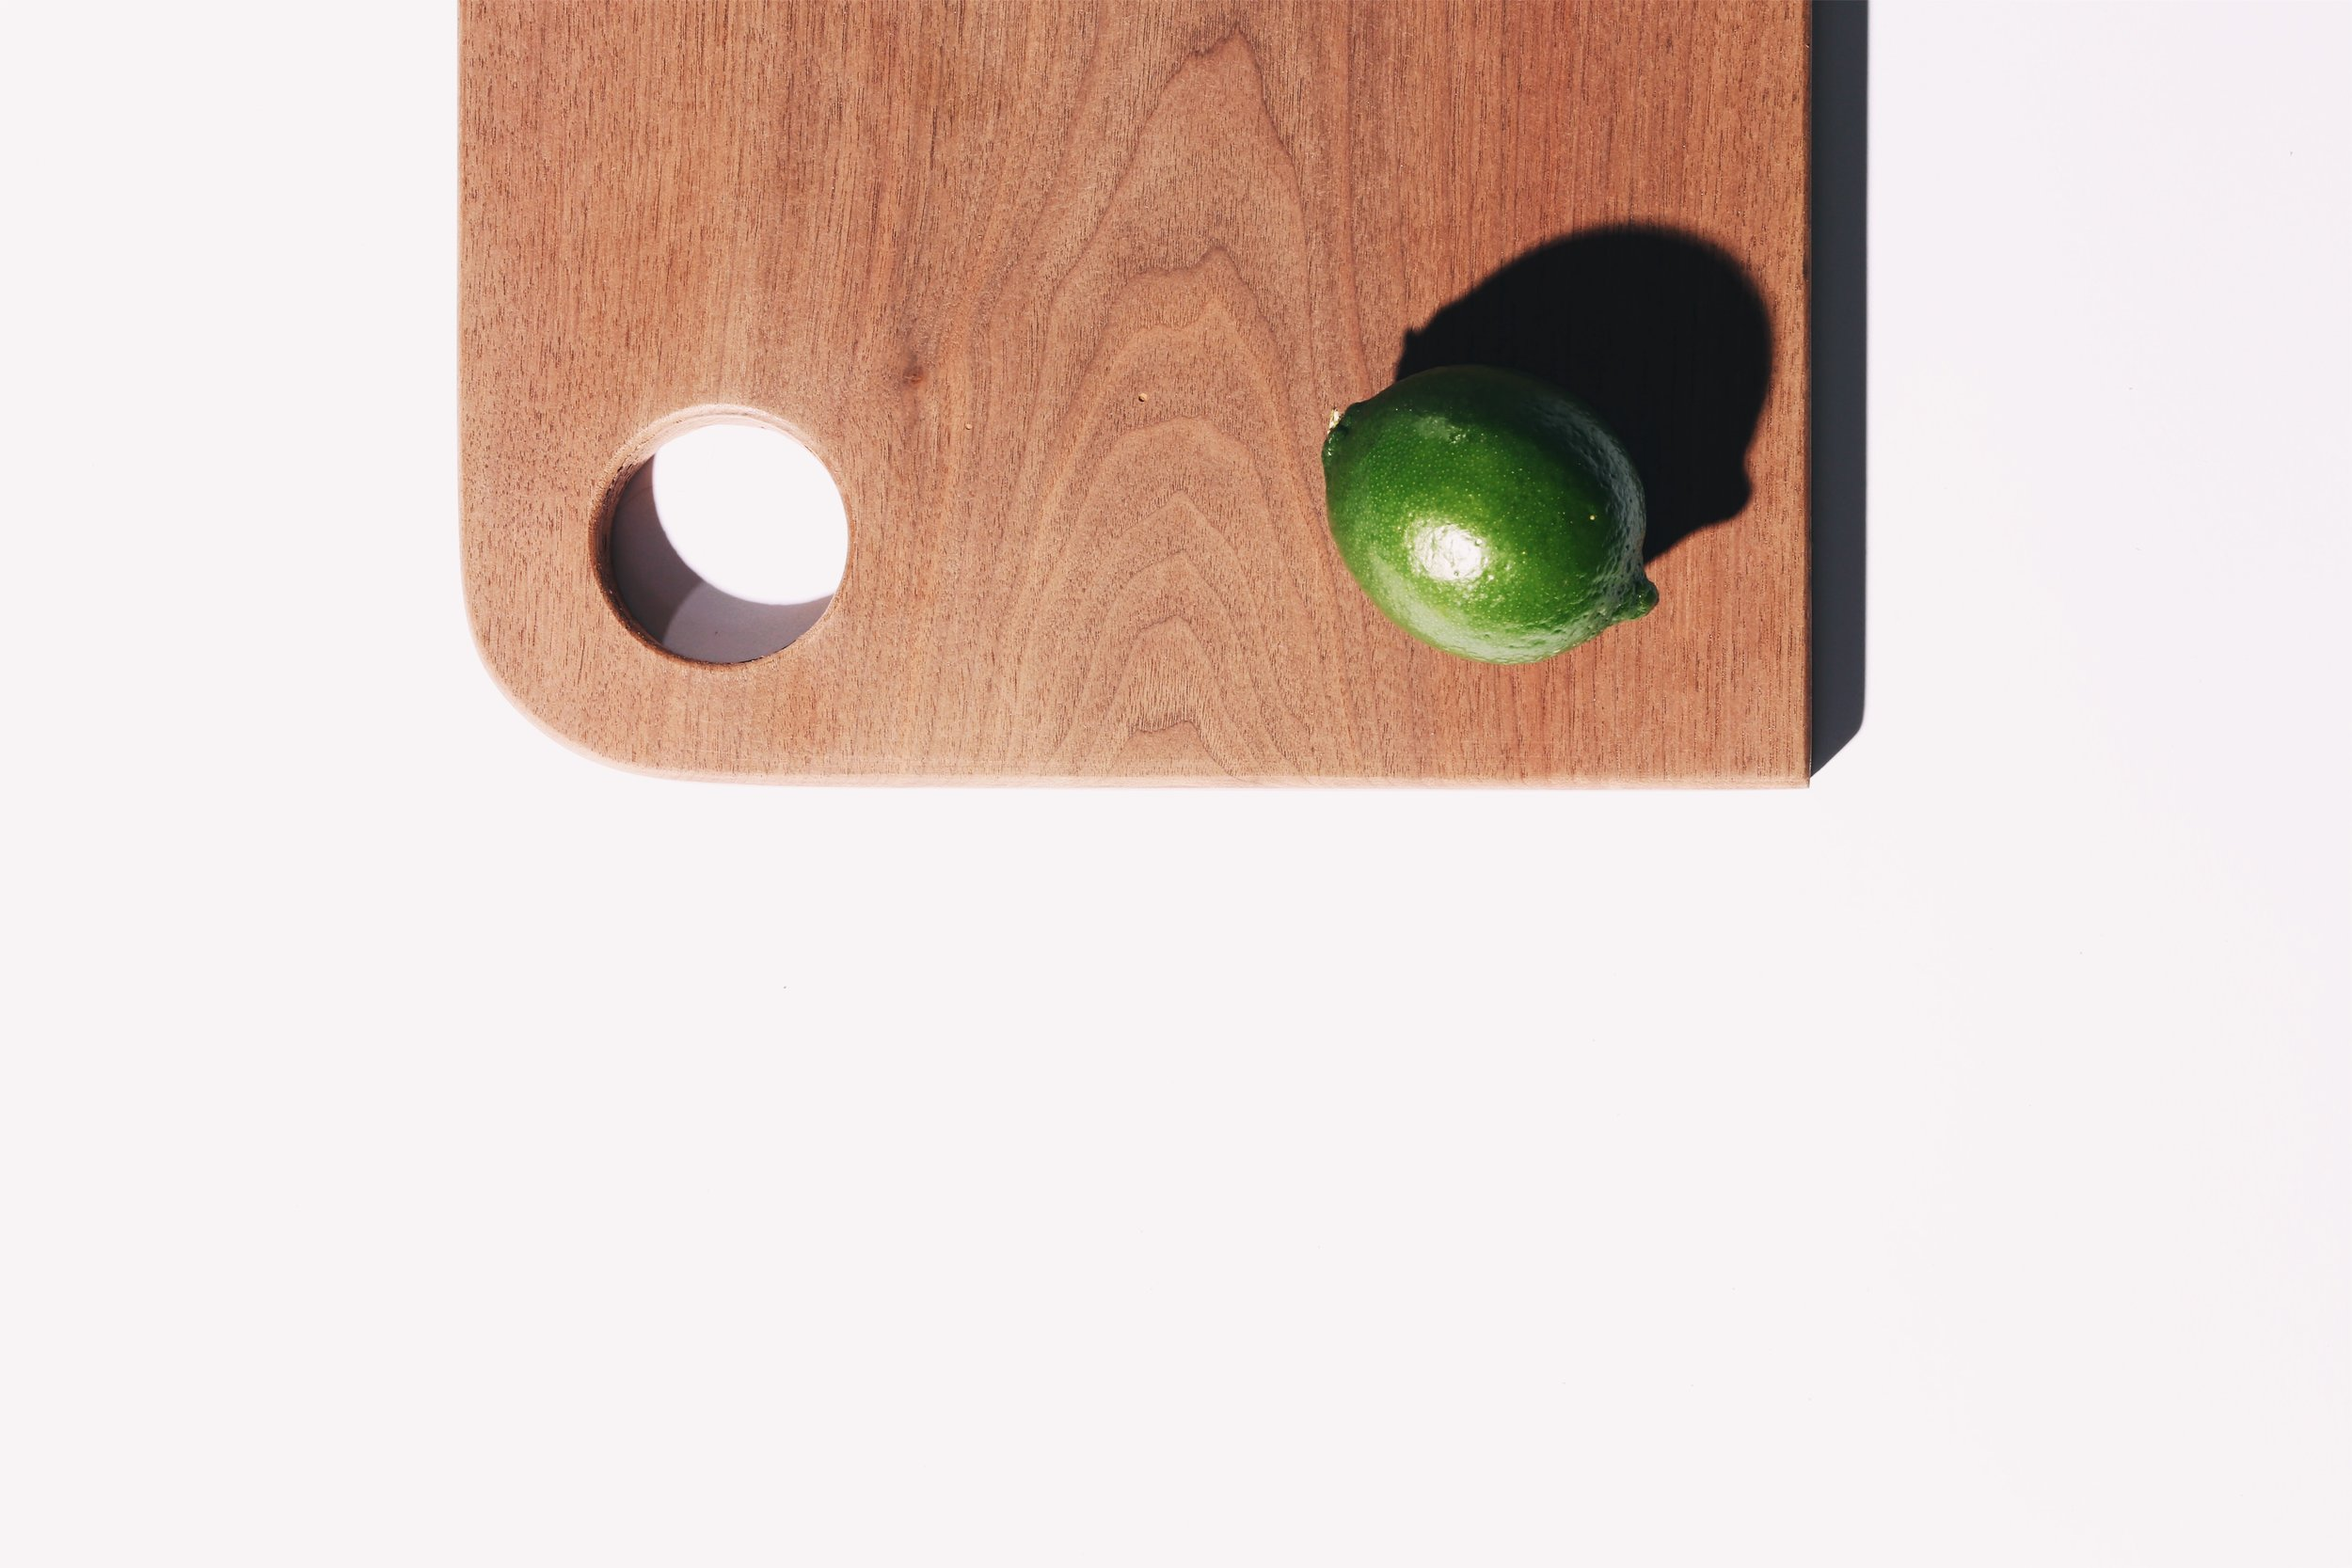 $88 - Cutting Board